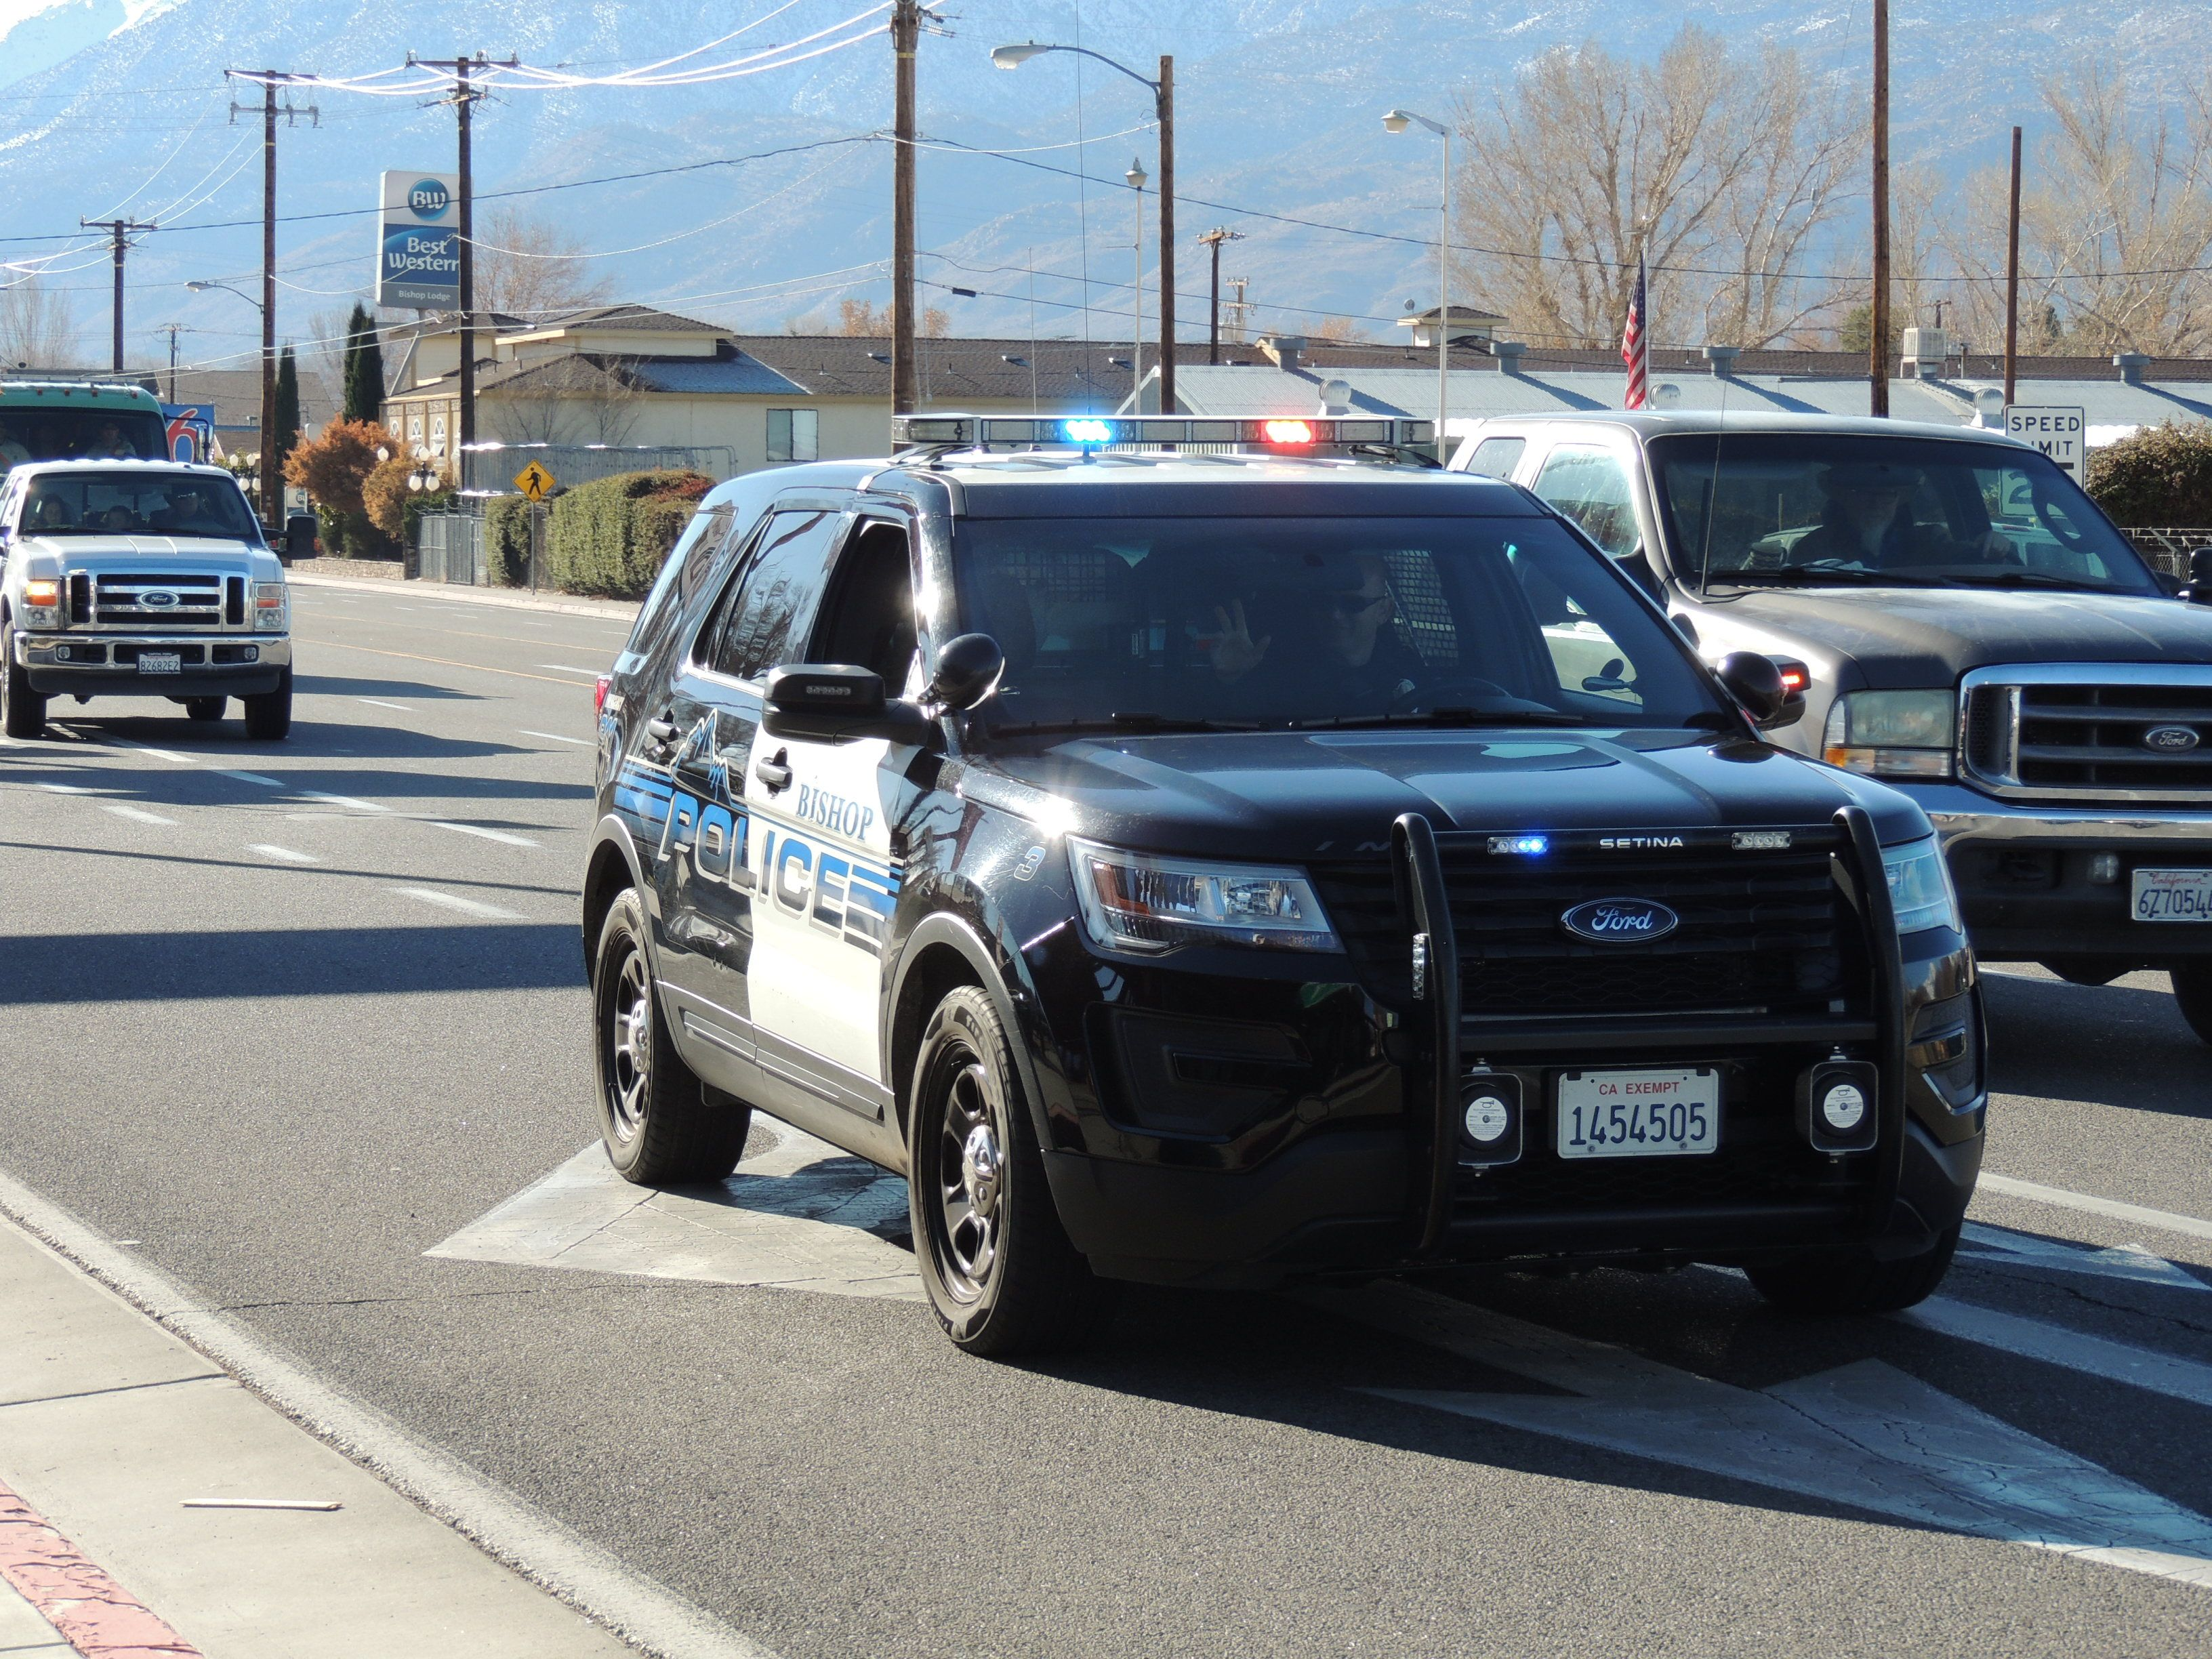 Pin By Anthony Ortiz On Police Vehicles Across The Usa With Images Police Cars Police Police Dept